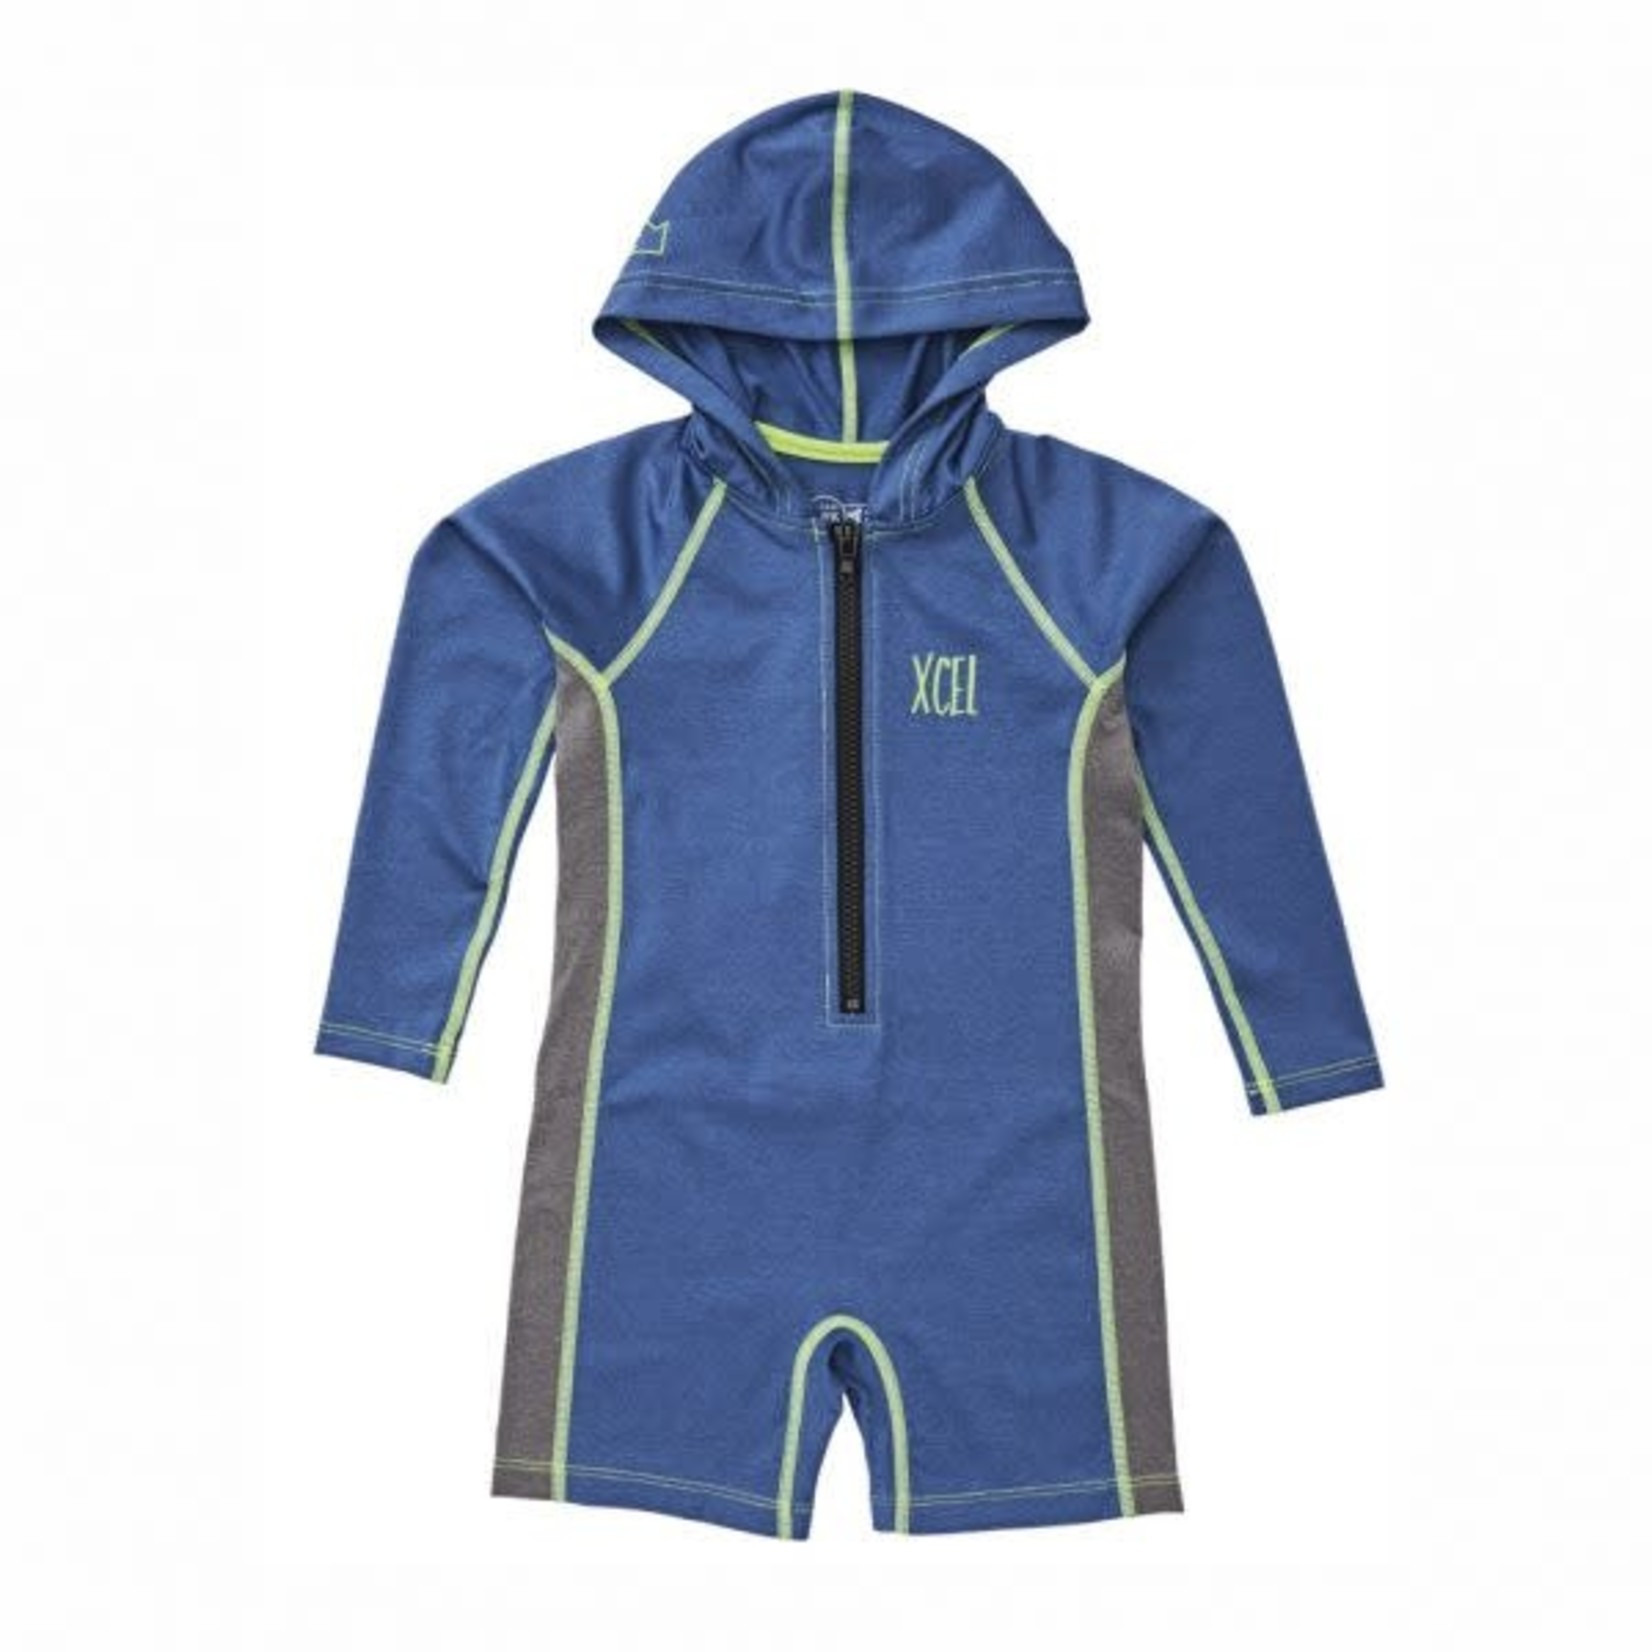 XCEL XCEL Toddler's Premium Stretch Unisex L/S Front Zip Hooded Springsuit.